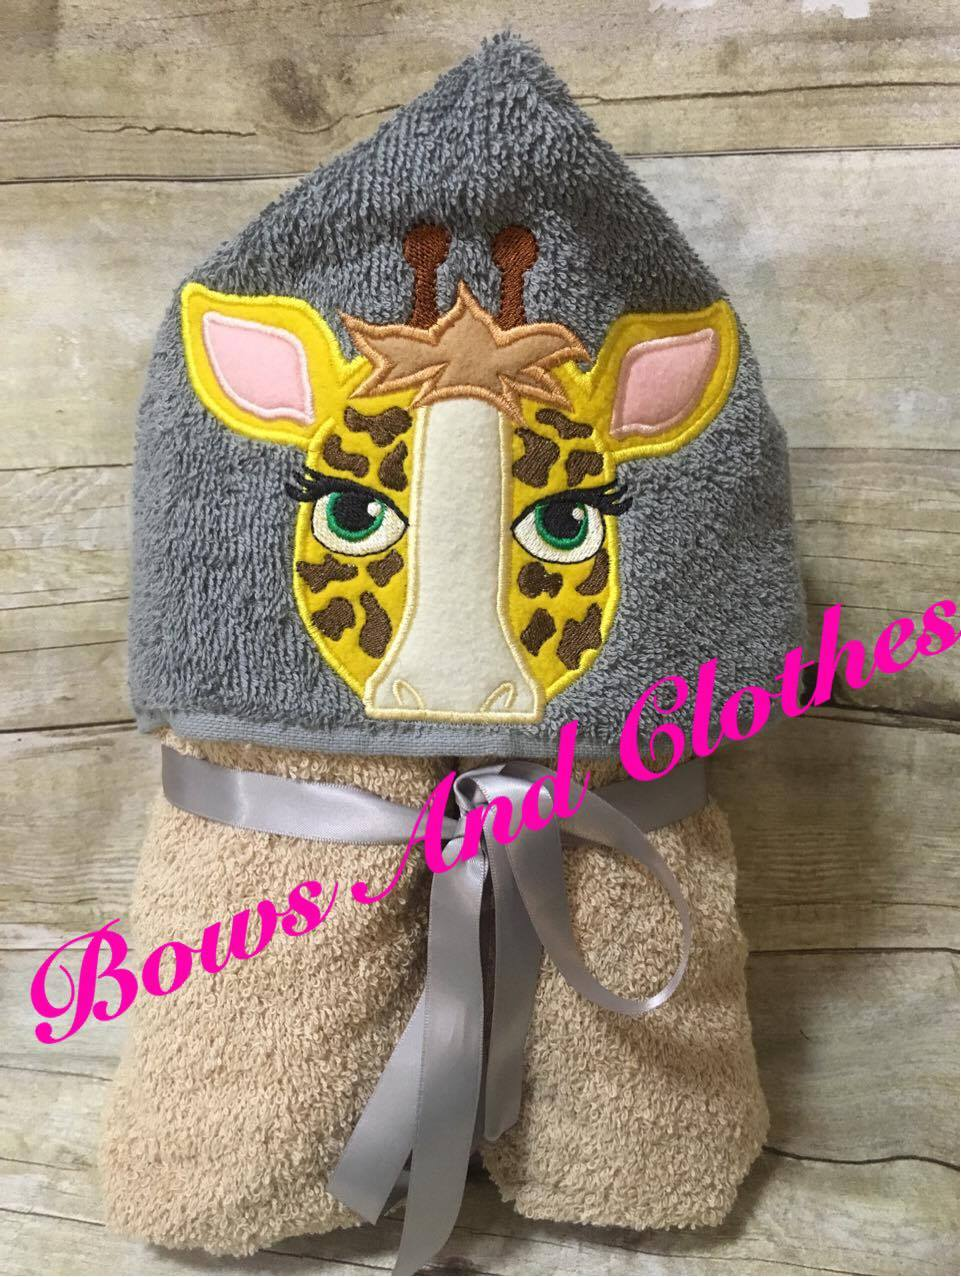 Giraffe Peeker Hooded Towel Bows And Clothes